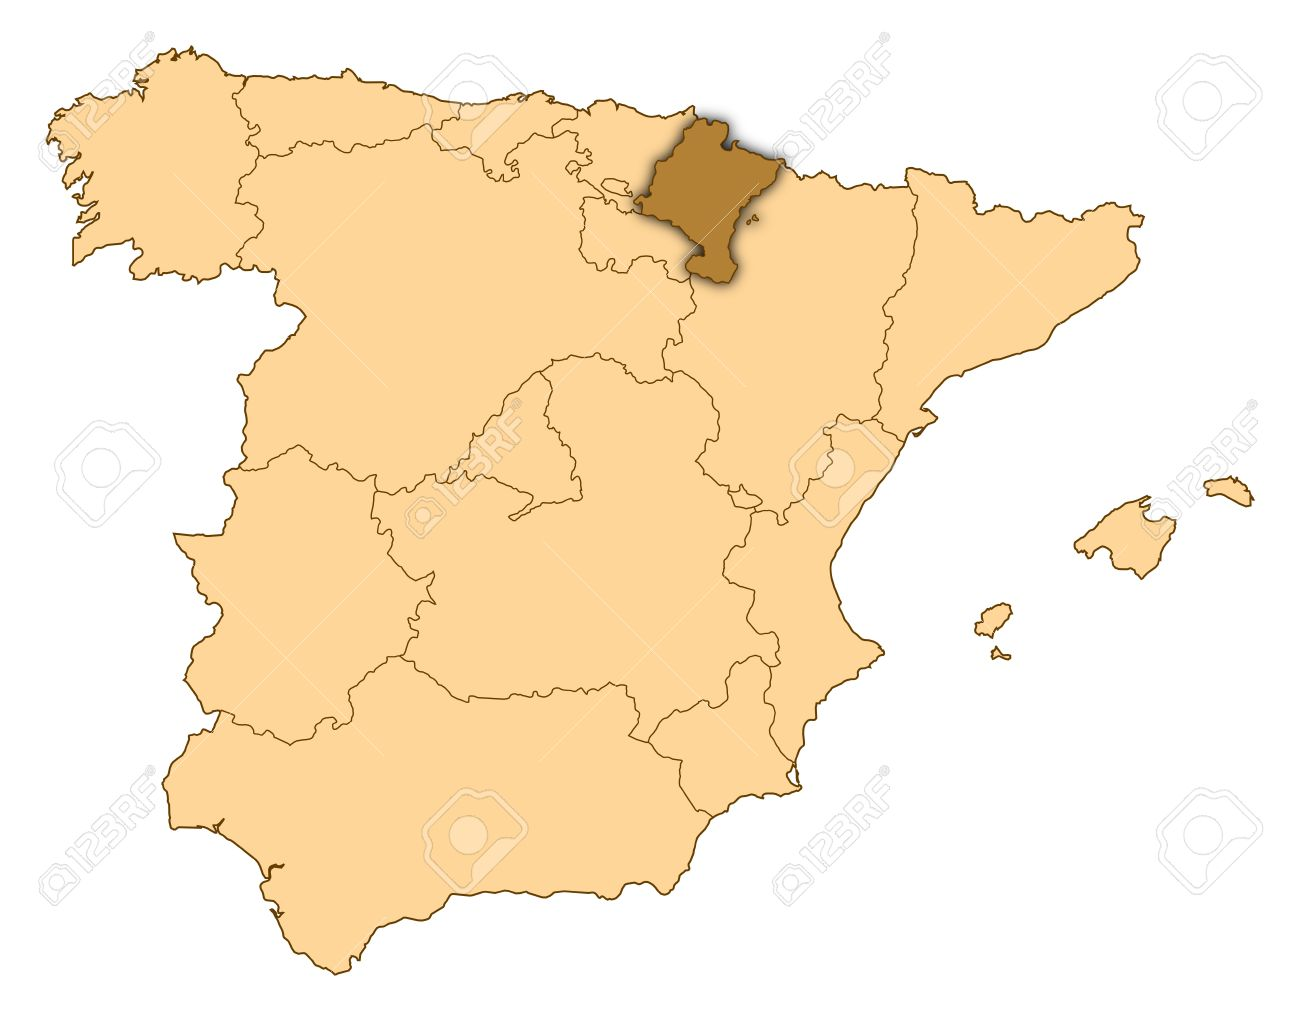 Map Of Spain Navarra.Map Of Spain Where Navarre Is Highlighted